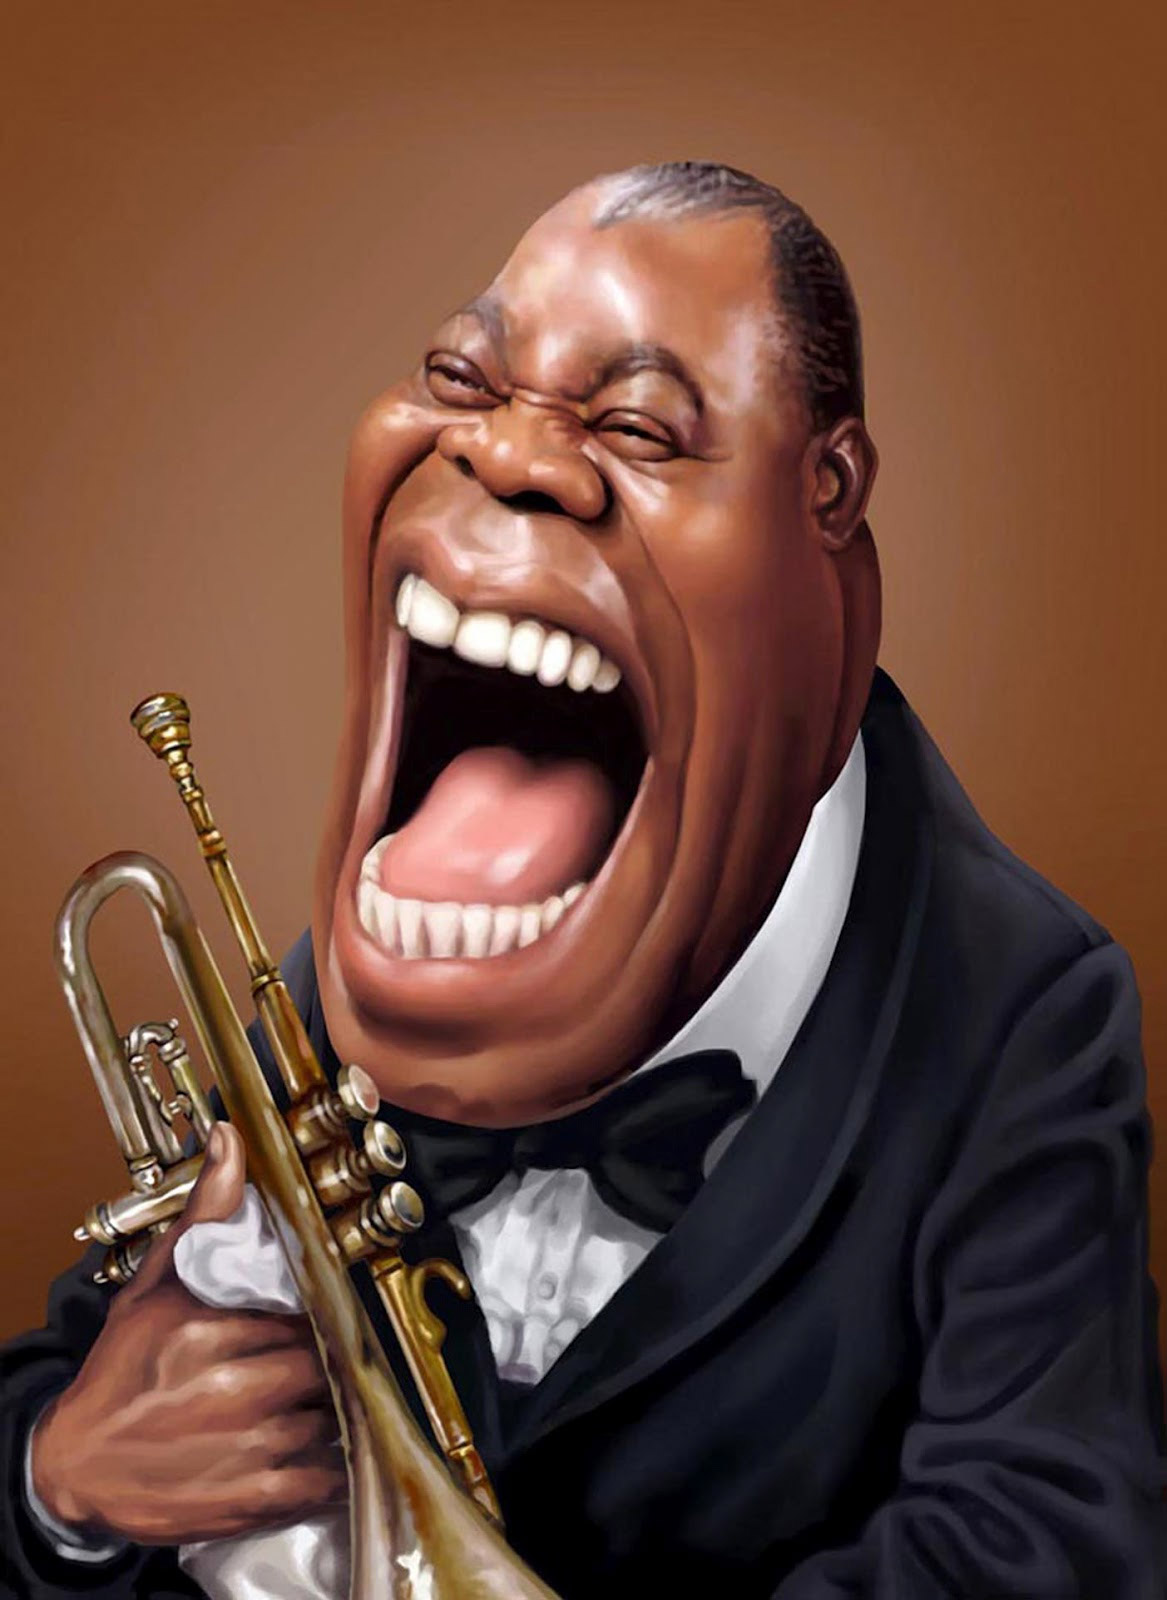 caricatura de louis armstrong. Black Bedroom Furniture Sets. Home Design Ideas